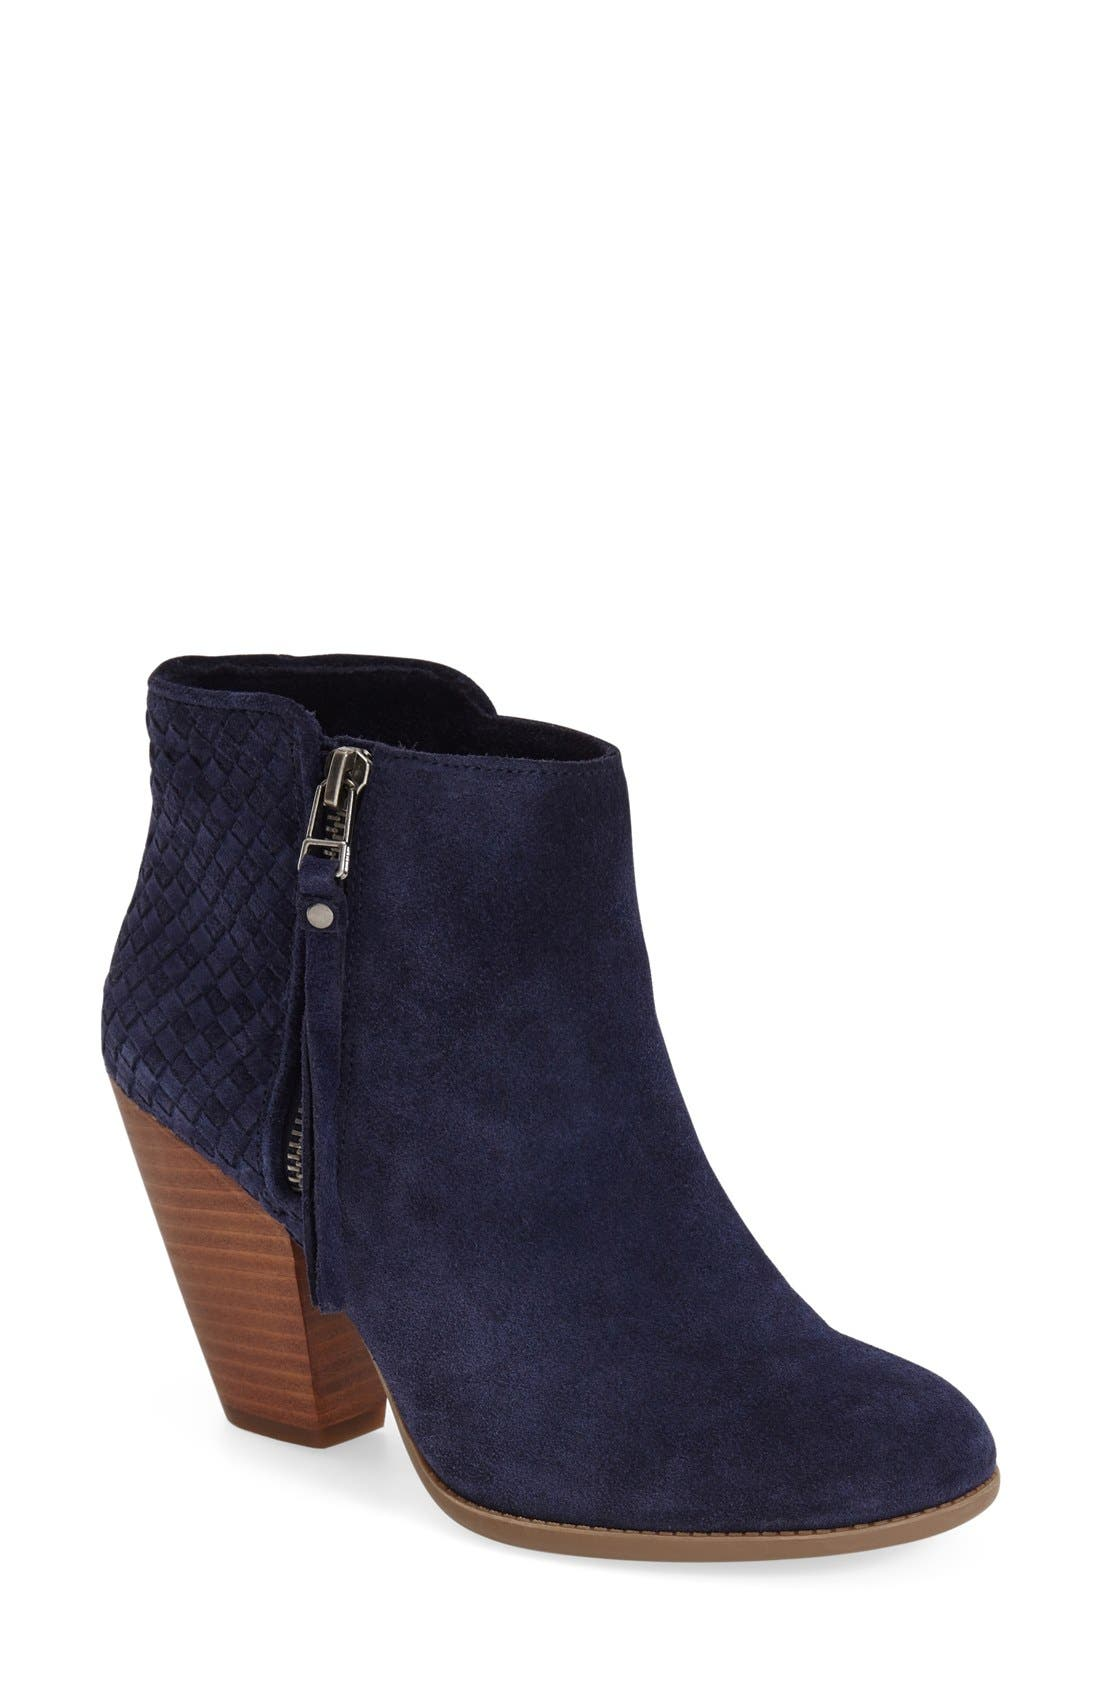 Main Image - Sole Society 'Zada' Bootie (Women)